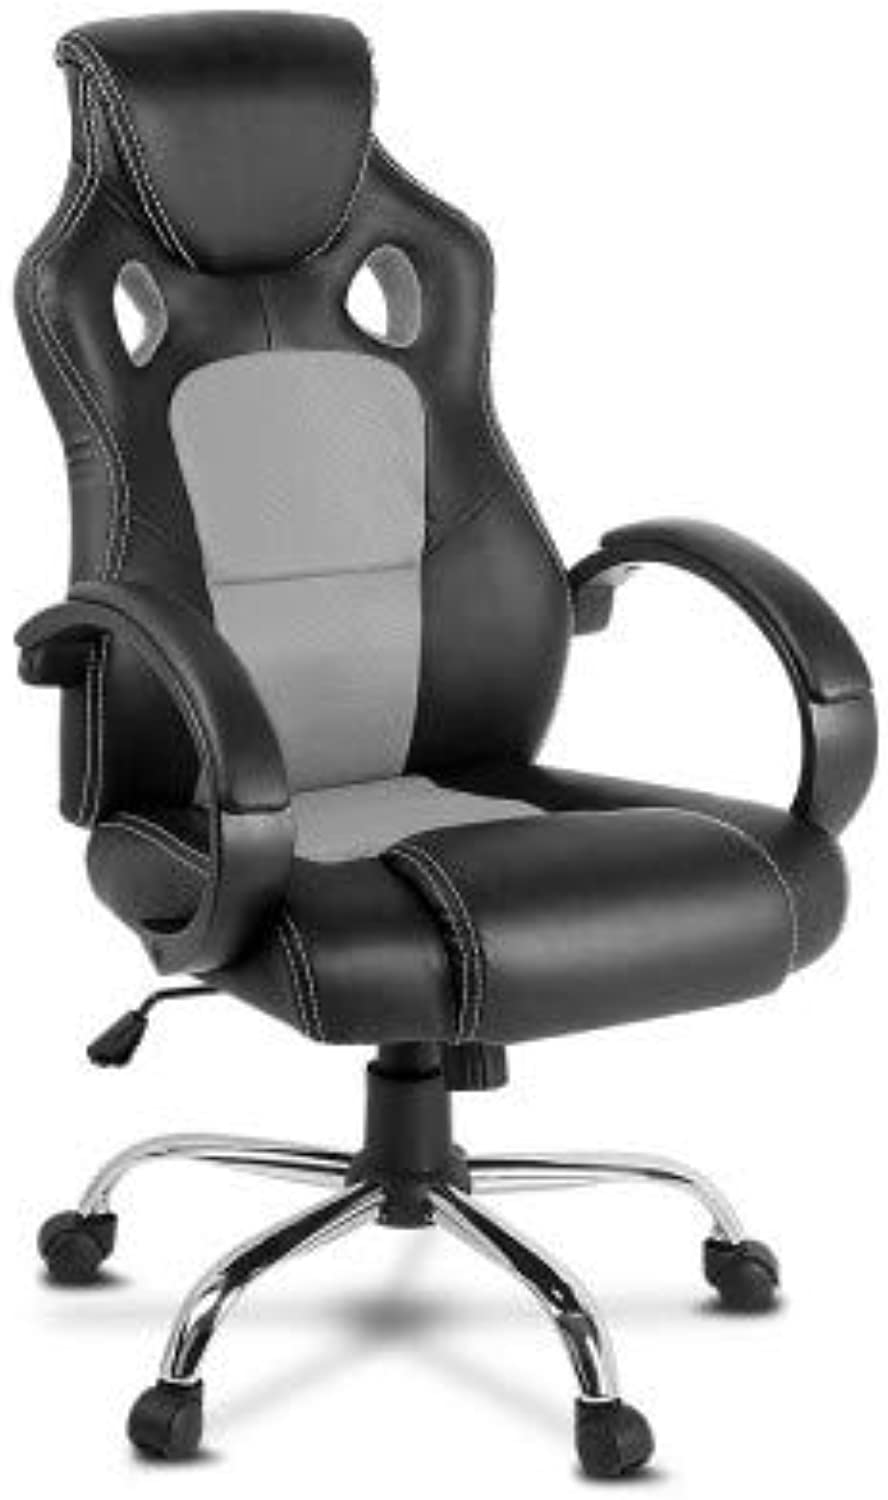 Racing Style Gaming Chair, PU Leather - Grey